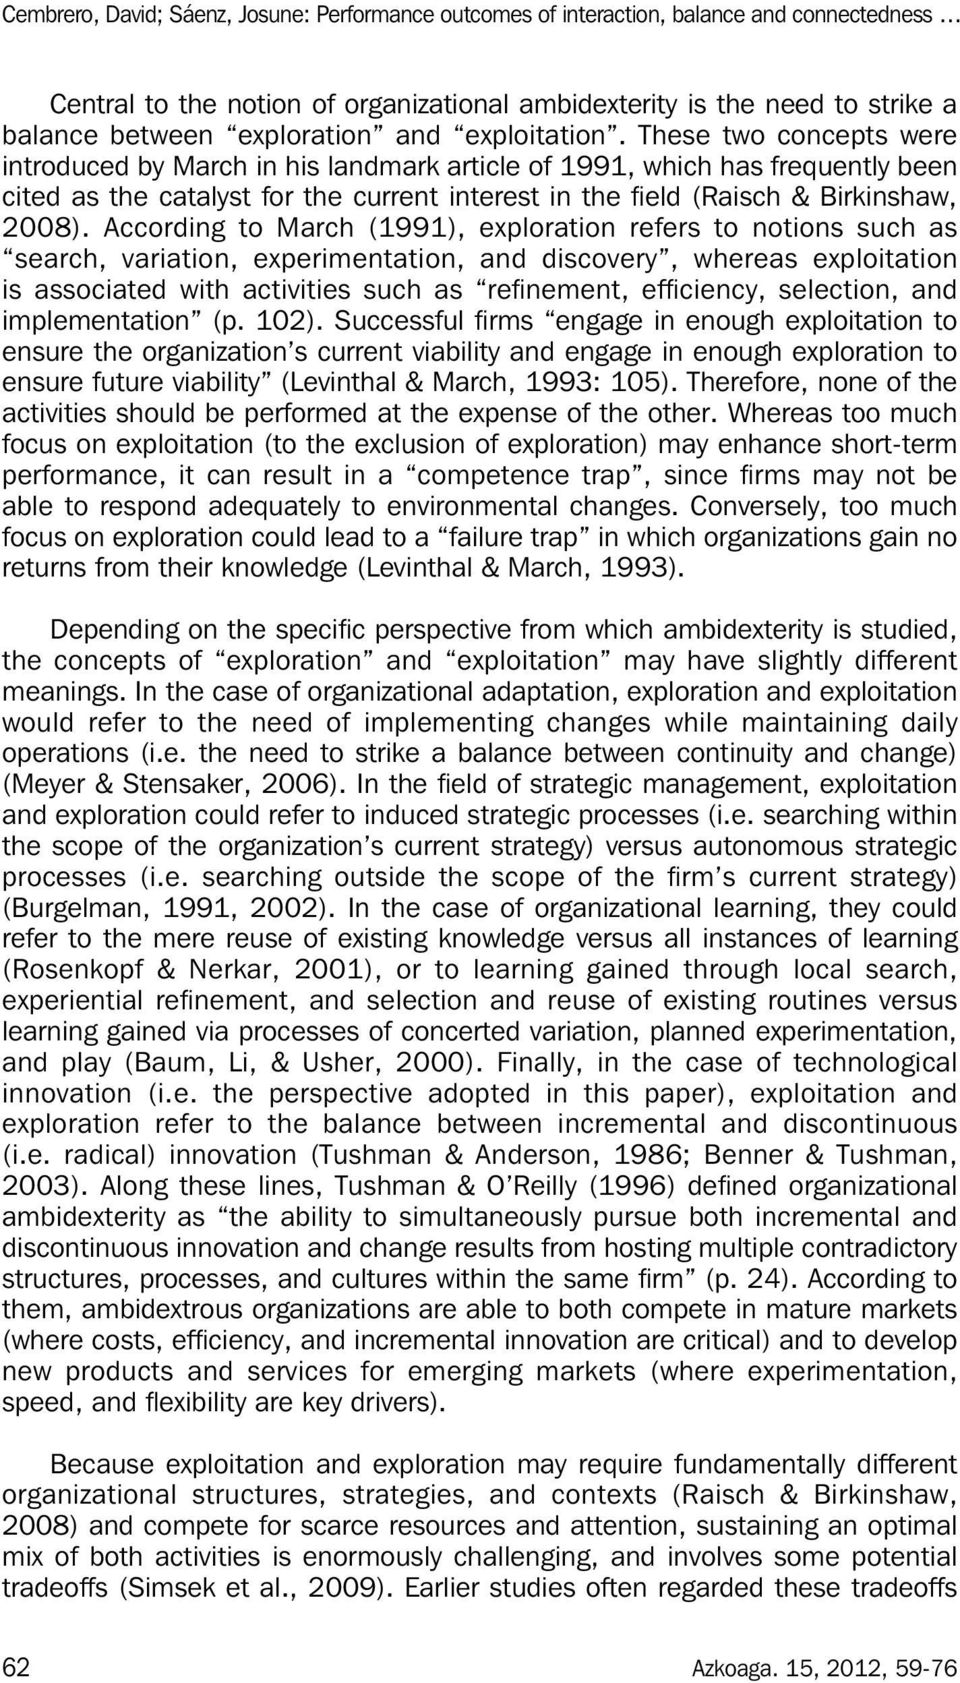 According to March (1991), exploration refers to notions such as search, variation, experimentation, and discovery, whereas exploitation is associated with activities such as refi nement, effi